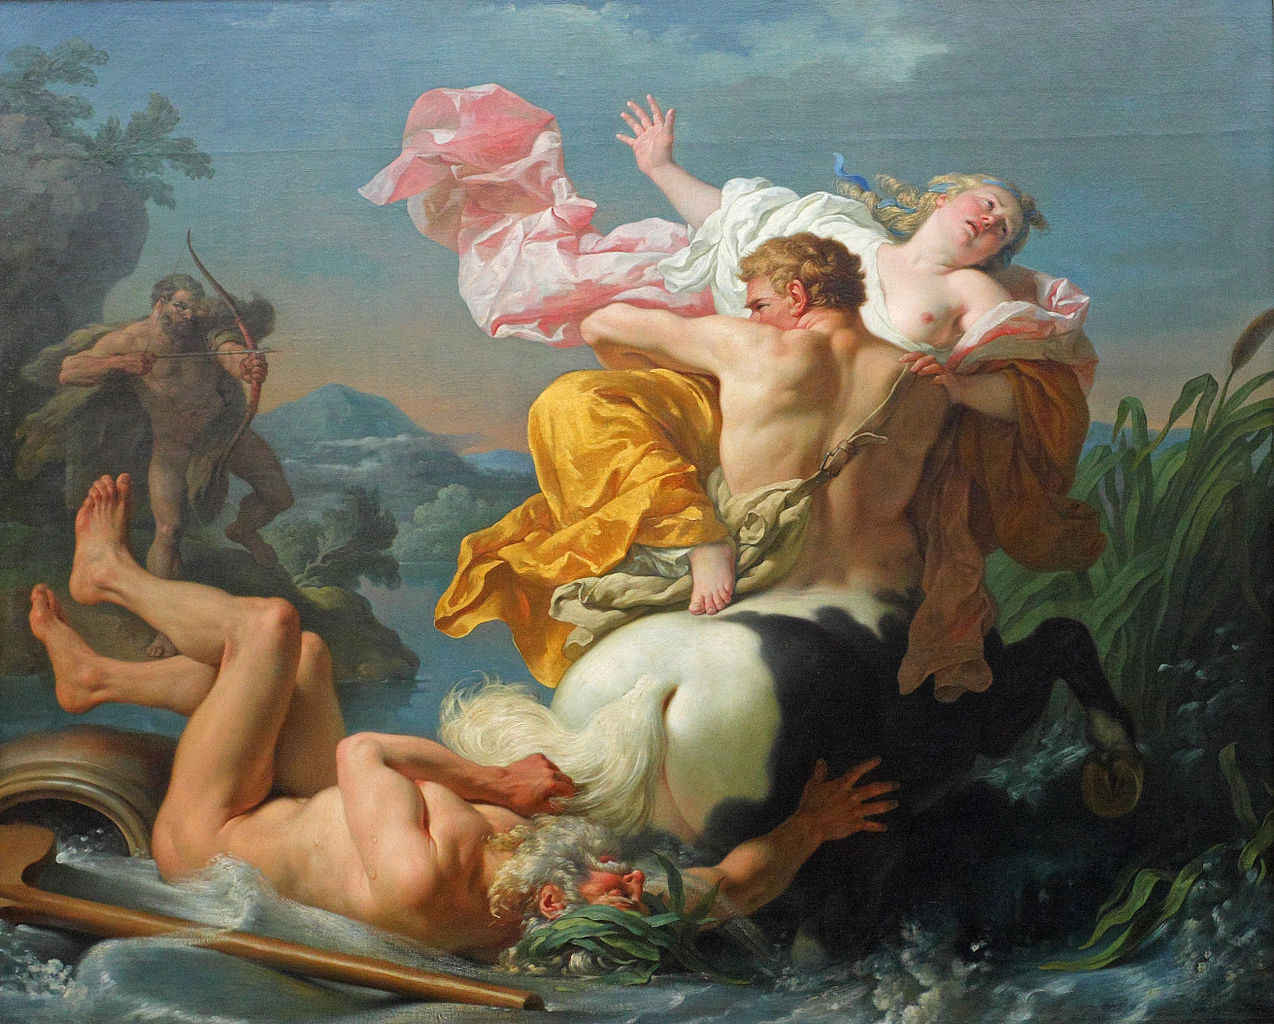 Louis-Jean-François Lagrenée: The Abduction of Deianeira by the Centaur Nessus